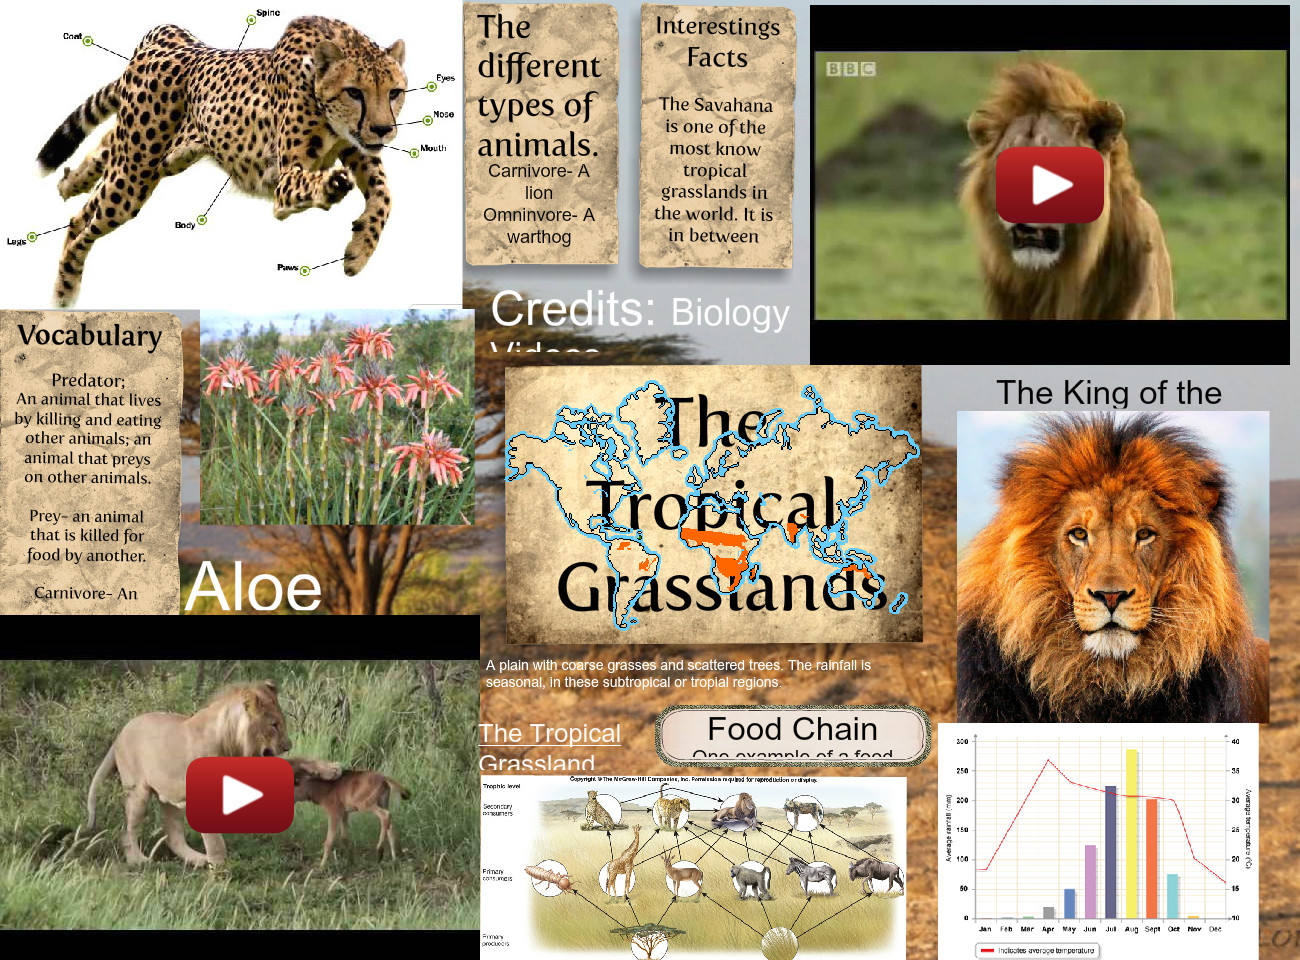 The Tropical Grasslands